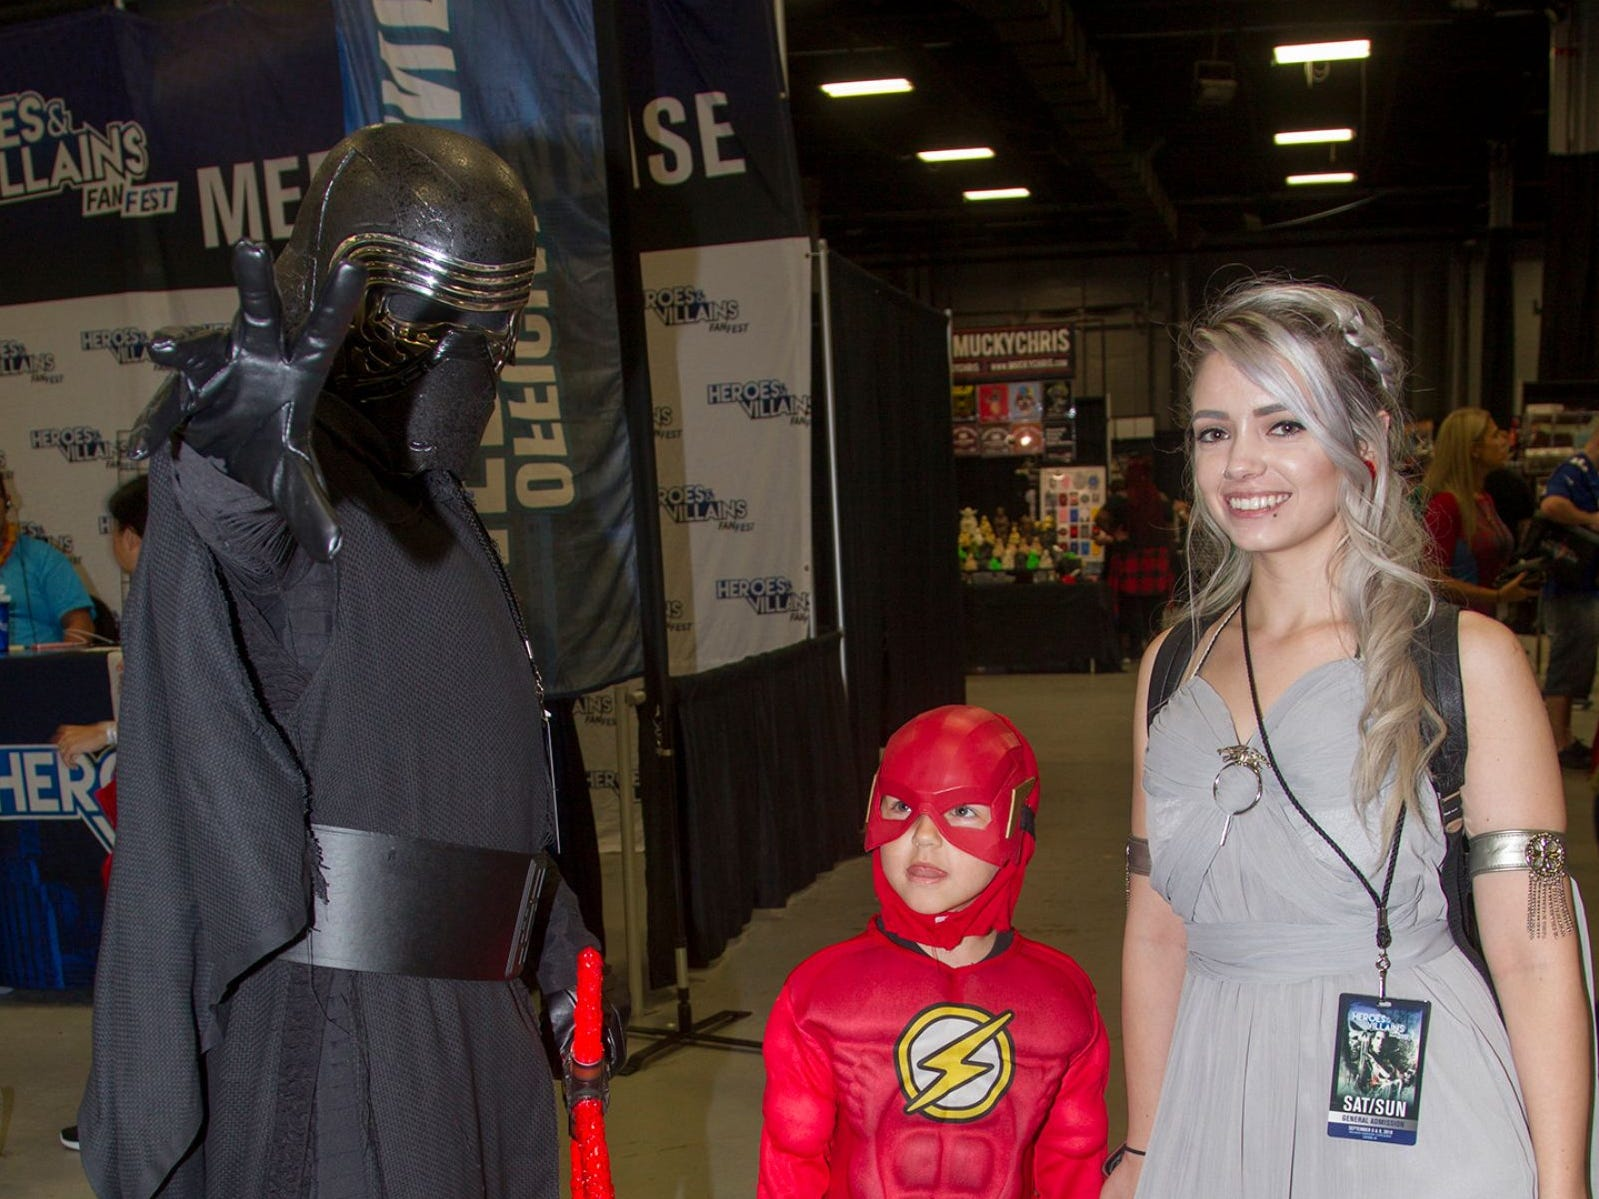 John as Kylo Ren, Andy as The Flash, and Beth as Daenerys Targaryen. The 2018 Heroes and Villains Fan Fest took place at the New Jersey Convention & Expo Center. 09/09/2018